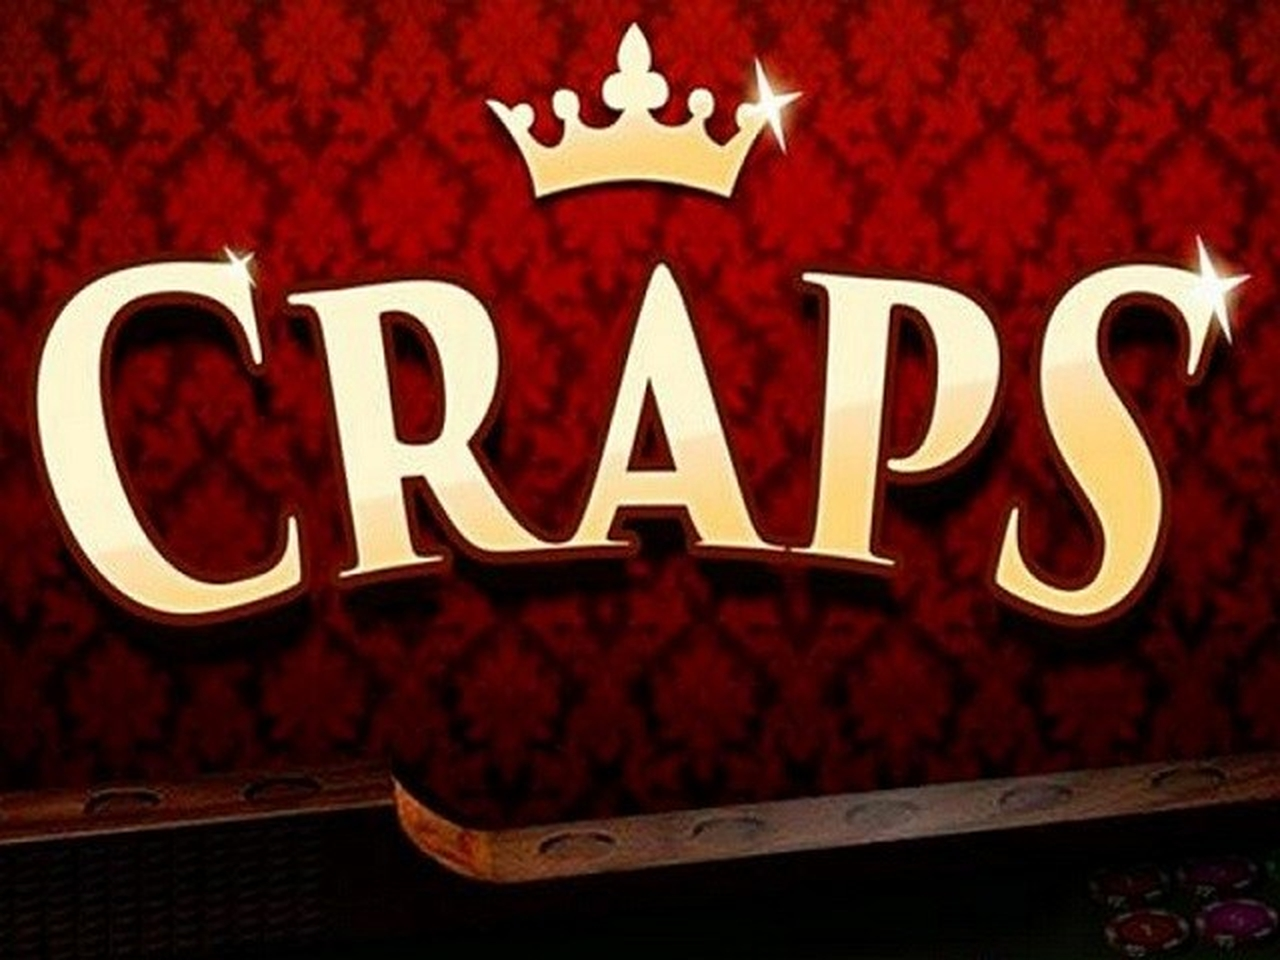 Se Craps (Microgaming) Online Slot Demo Game, Microgaming